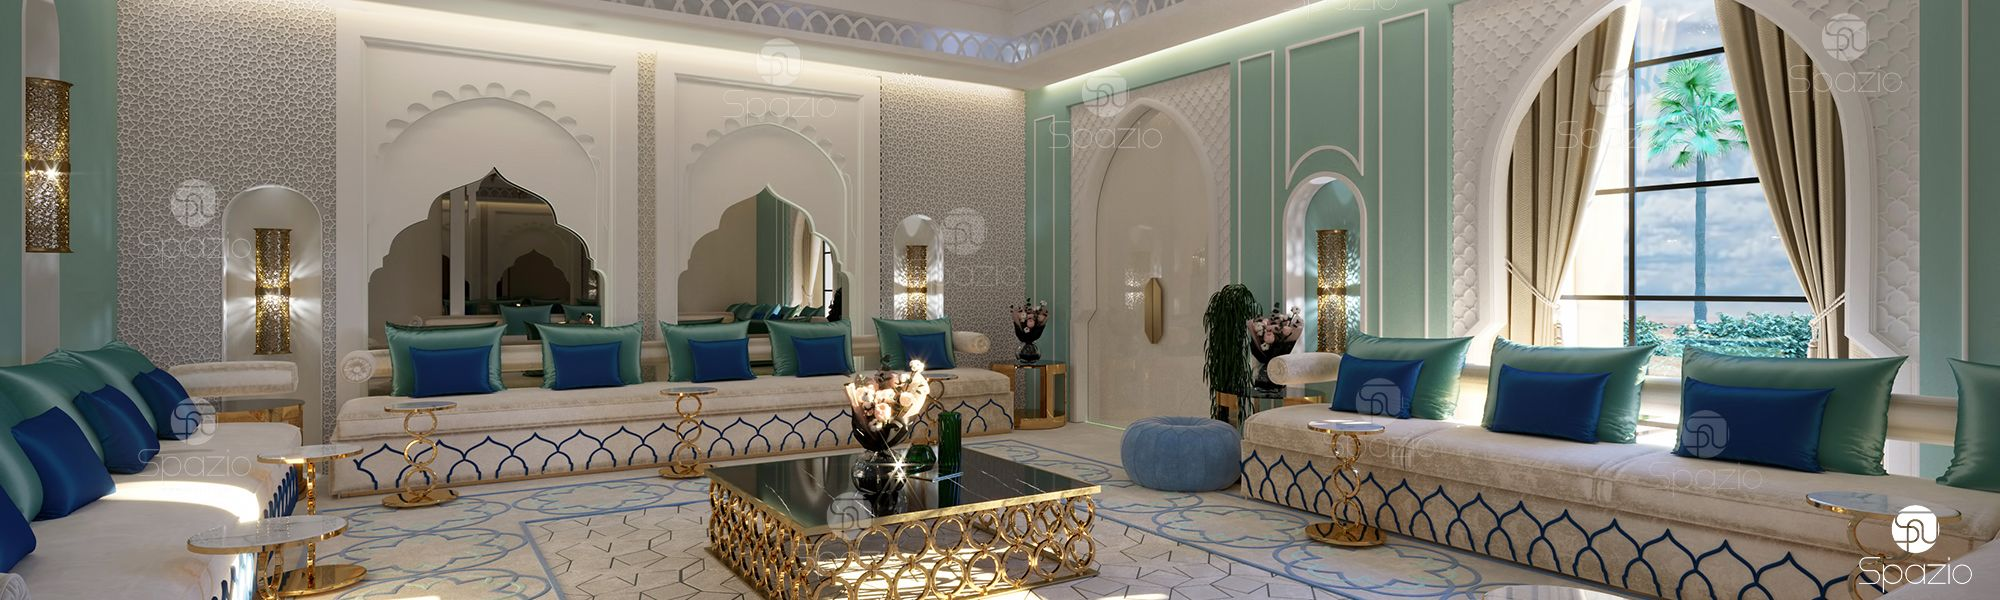 Modern Moroccan Style Interior Design And Home Decor In